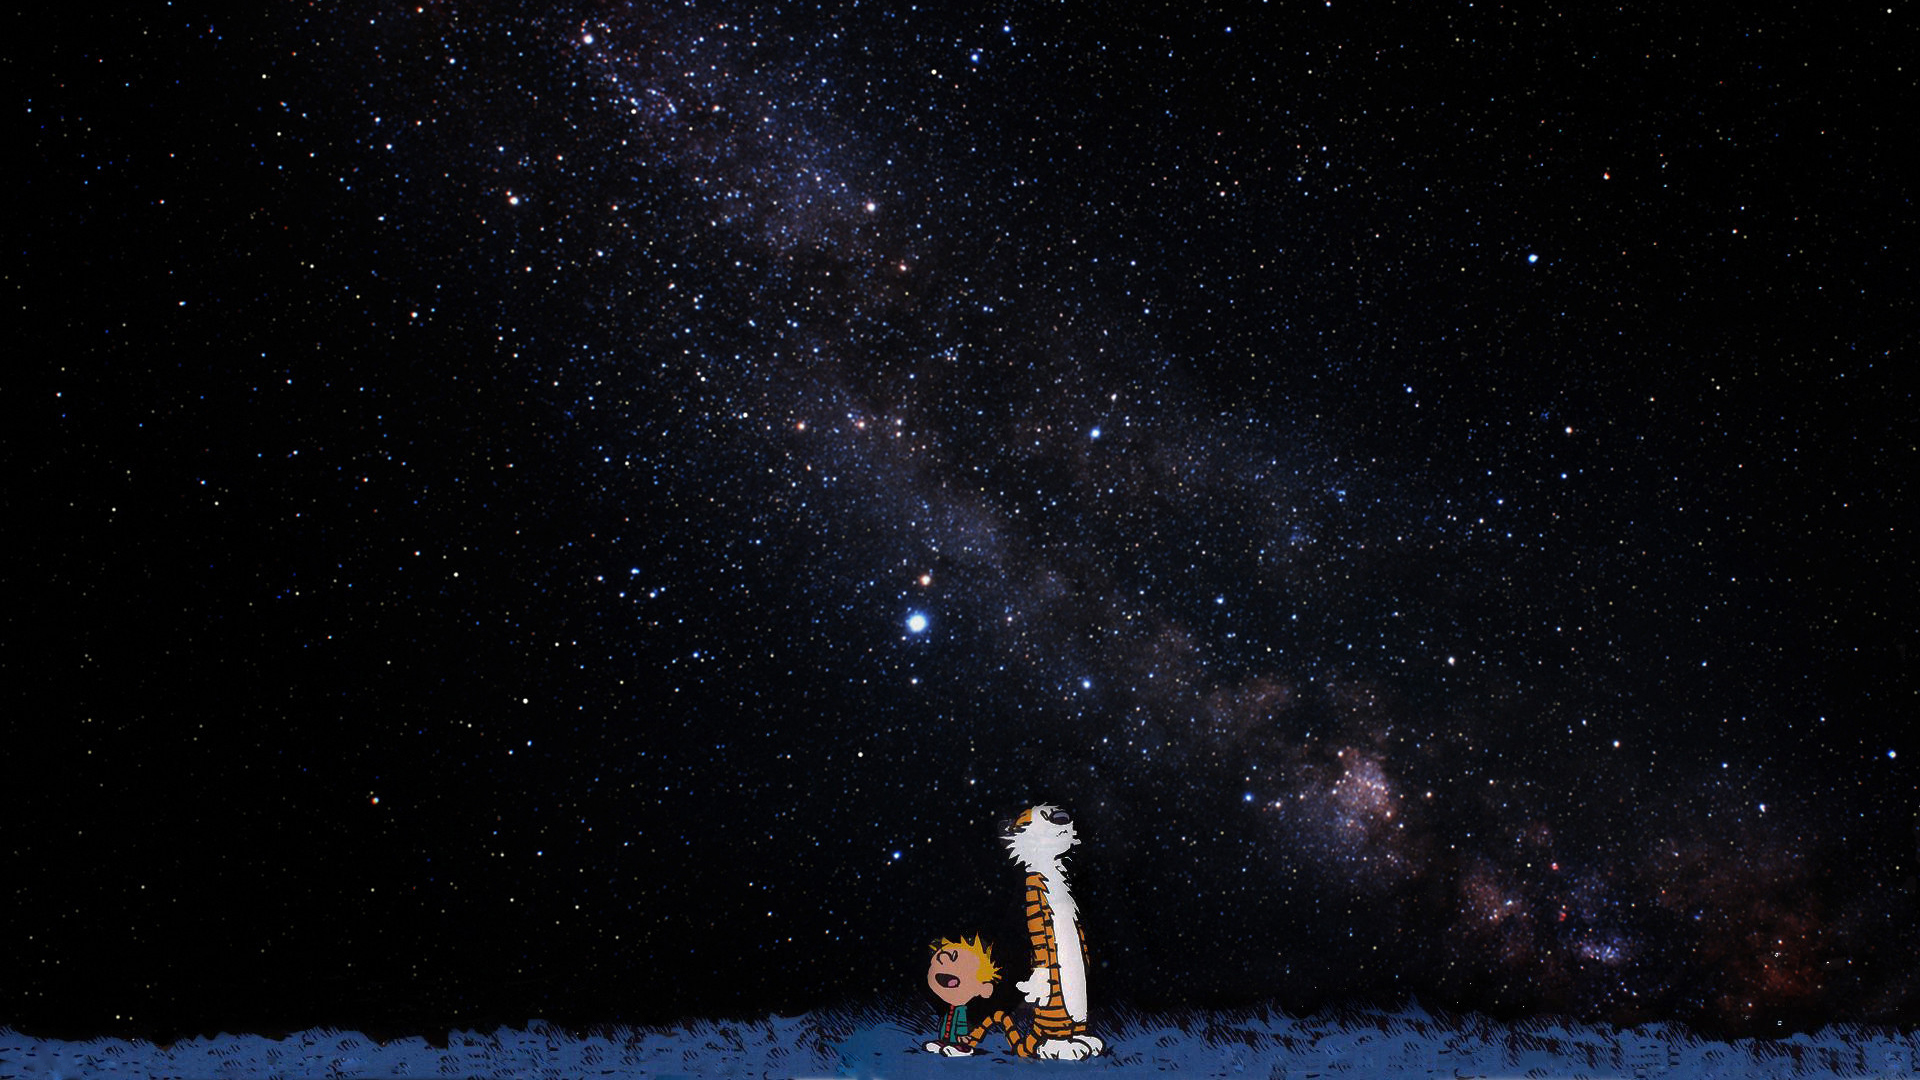 Space Wallpaper 1920x1080 Outer Space Calvin And Hobbes Artwork 1920x1080